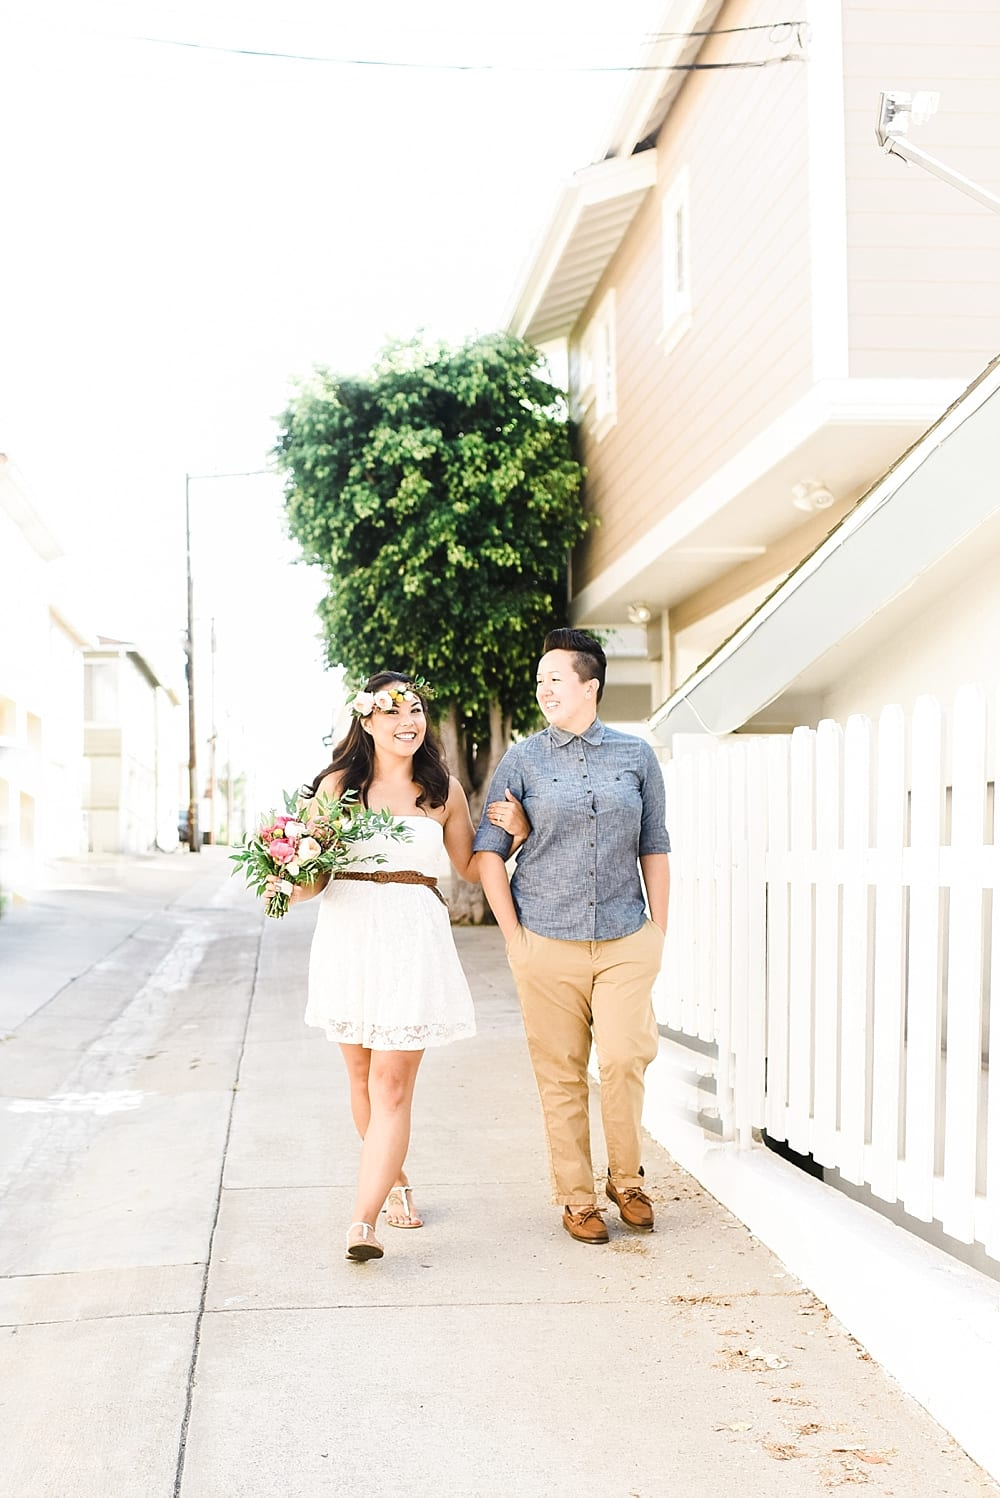 Newport-Engagement-Photographer-Carissa-Woo-Photography_0004.jpg